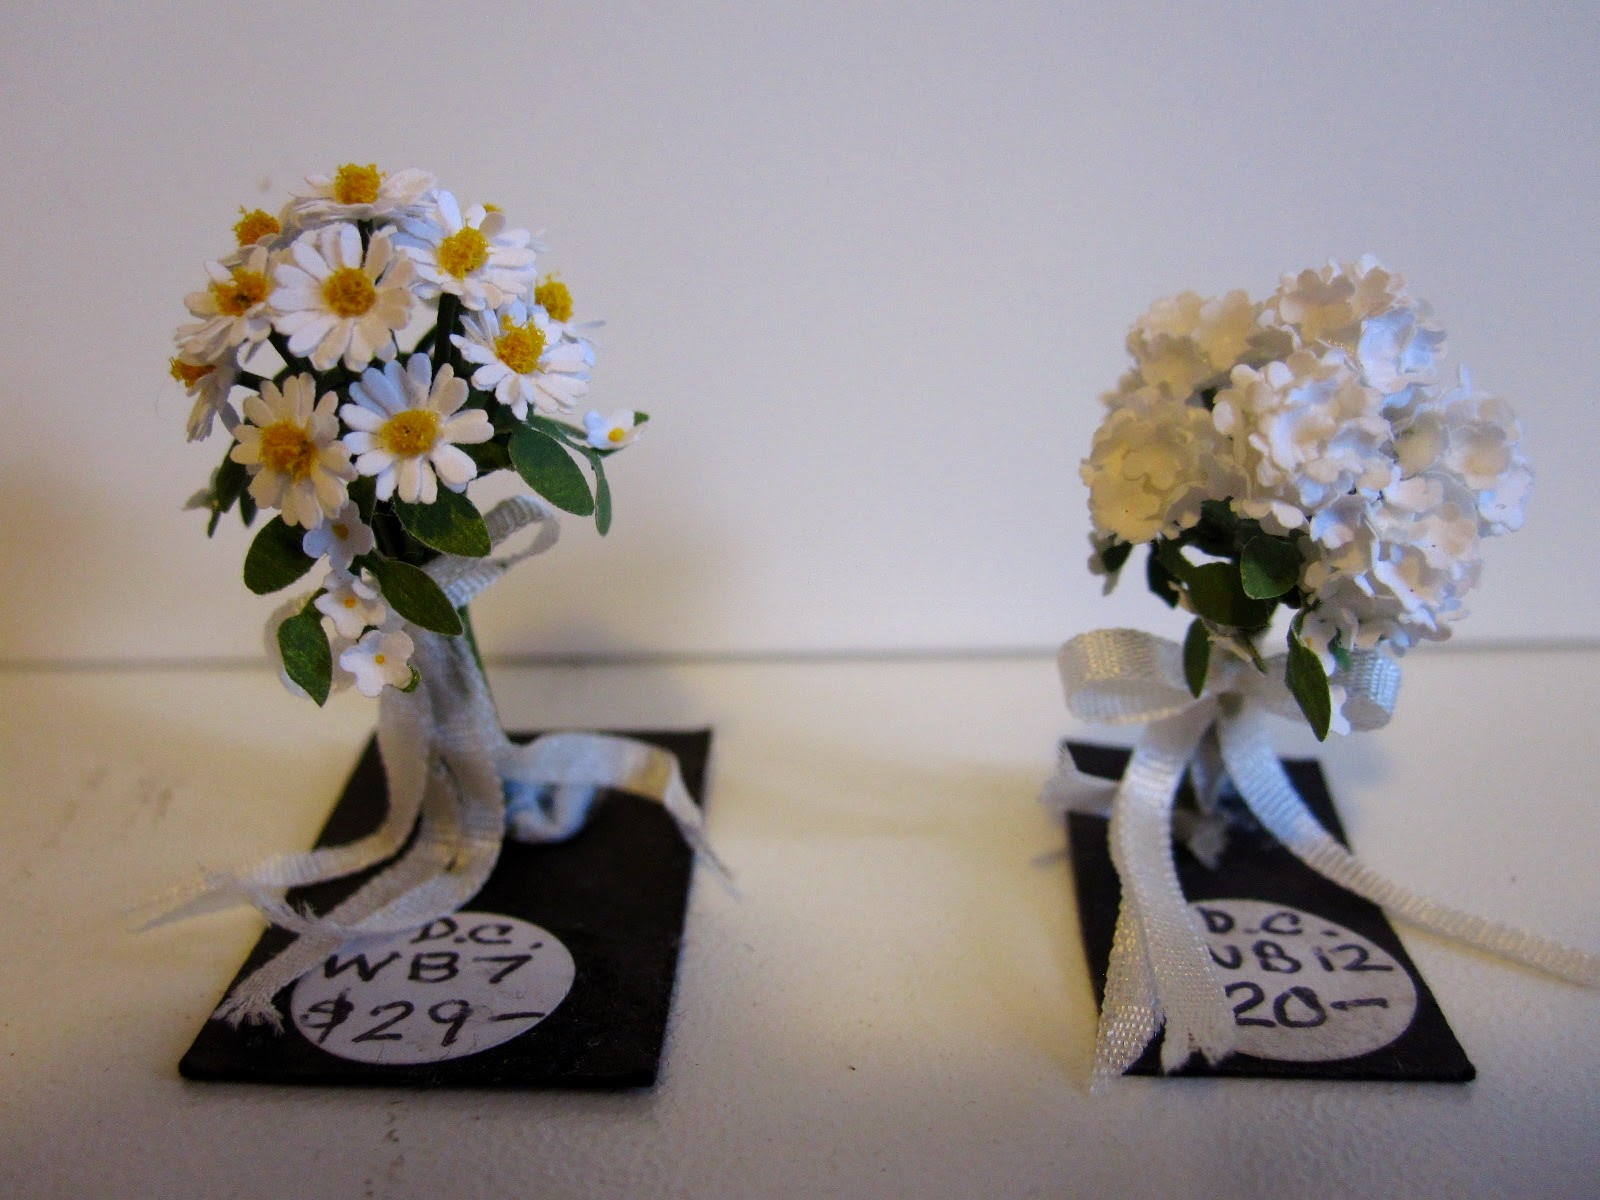 Two miniature posies of flowers: on the left is a bunch of daisies with a price sticker saying $29. On the right, a bunch of hydrangeas with a price sticker saying $20.